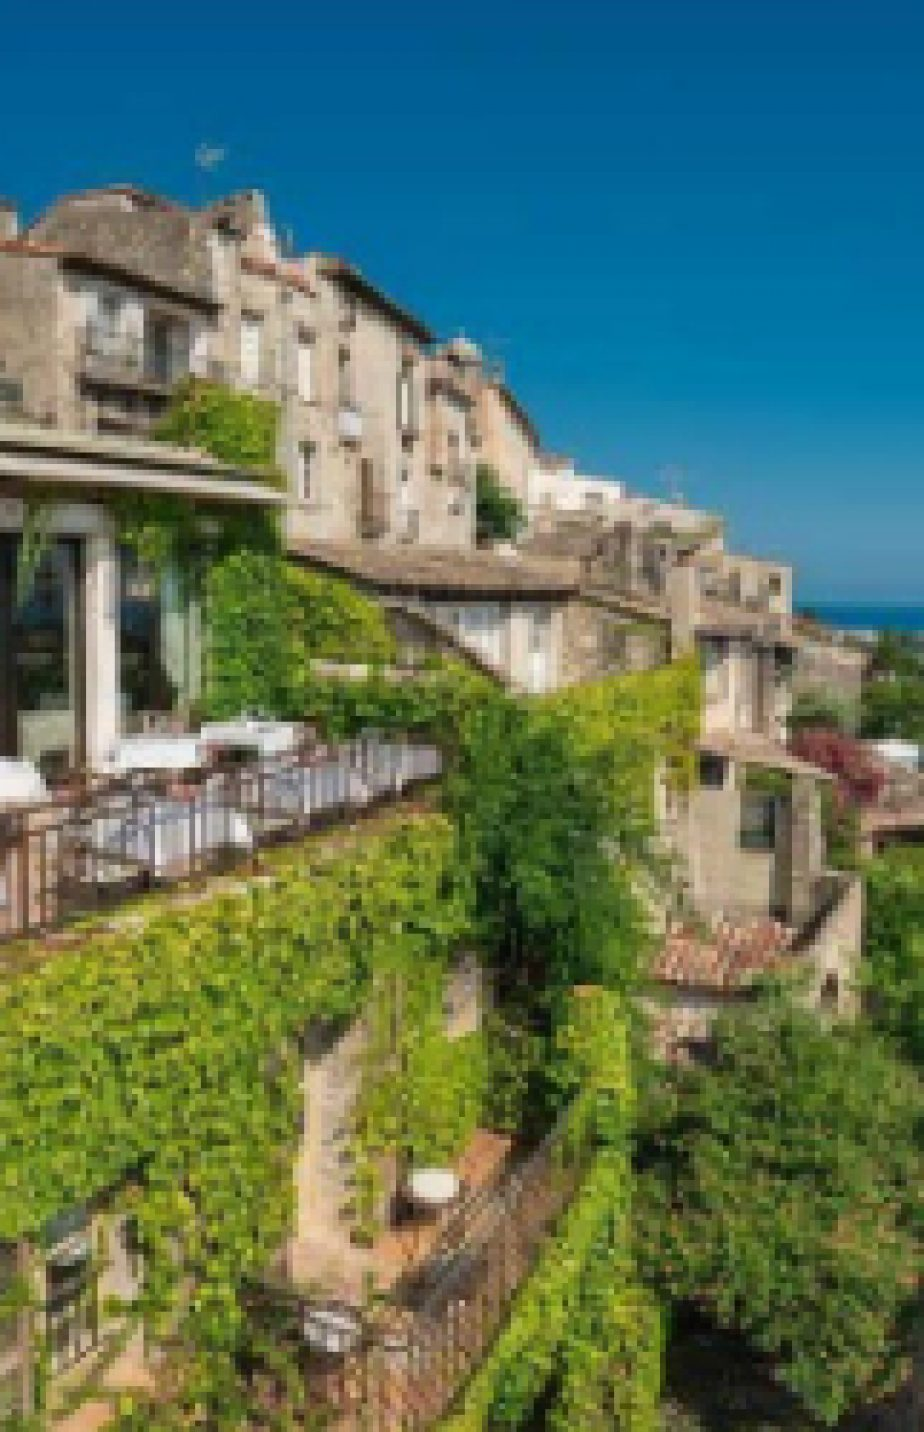 March 2017 – Visit to Haut Cagnes and lunch at Le Cagnard